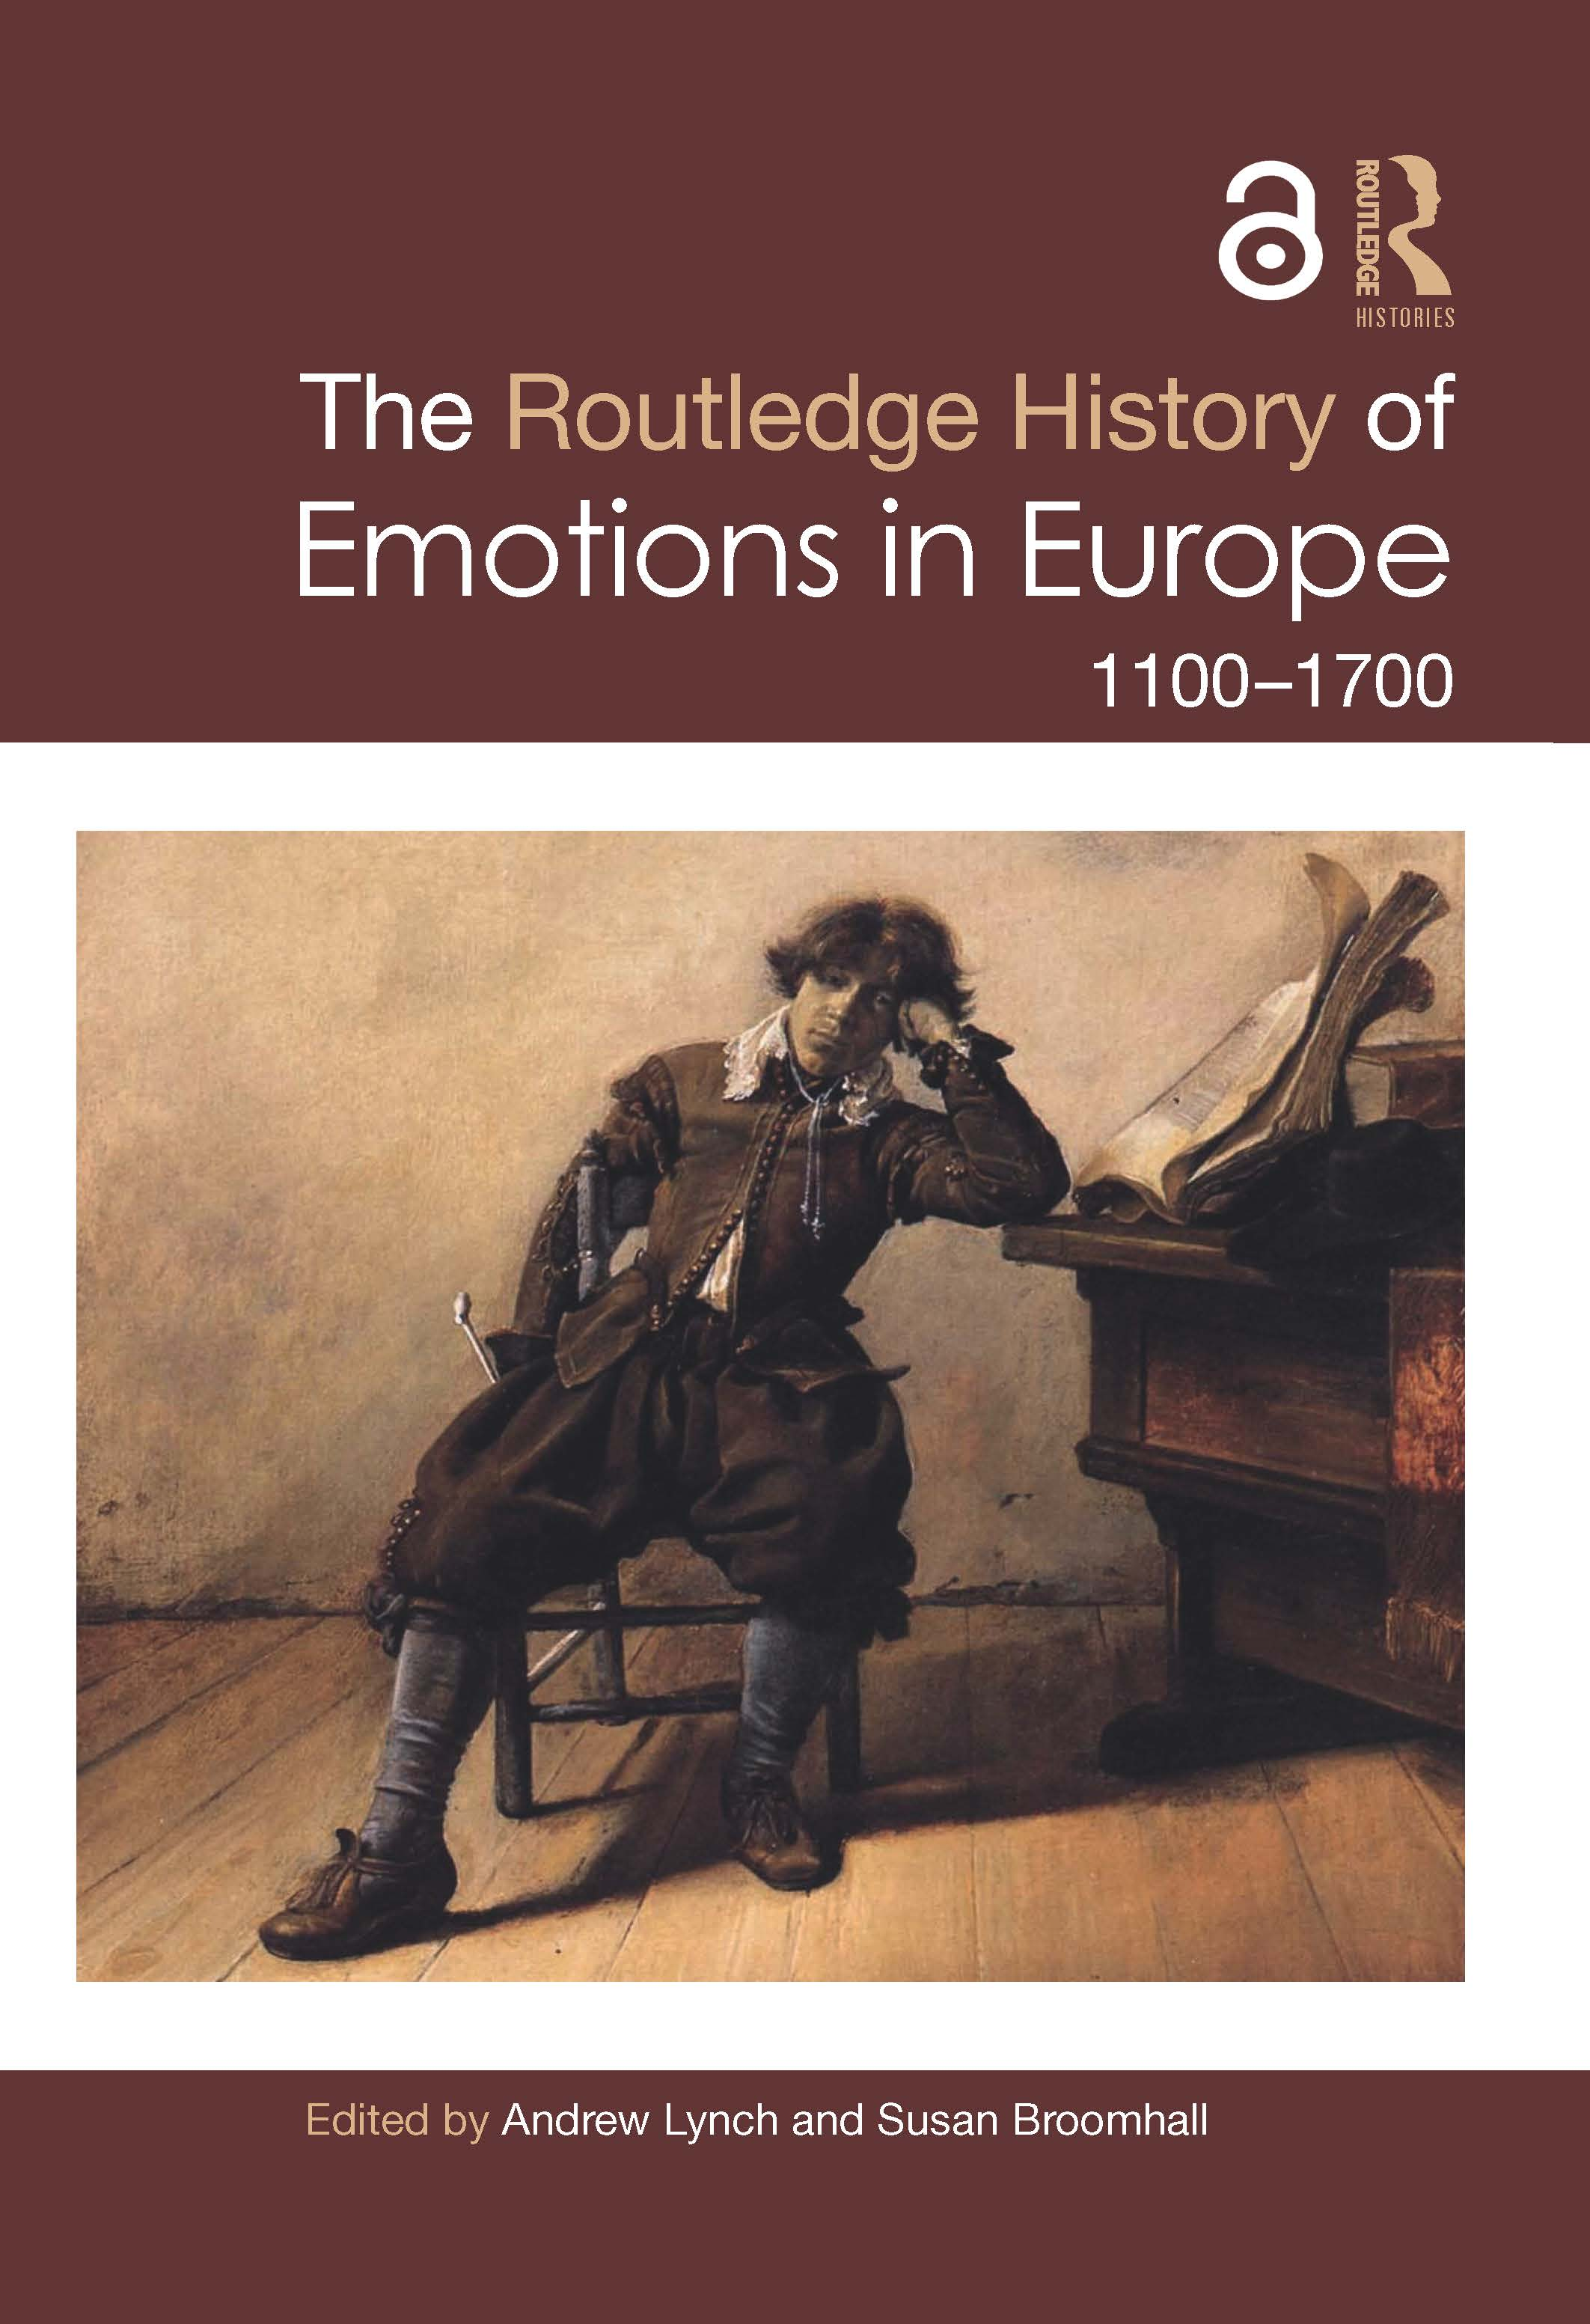 The Routledge History of Emotions in Europe: 1100-1700 book cover